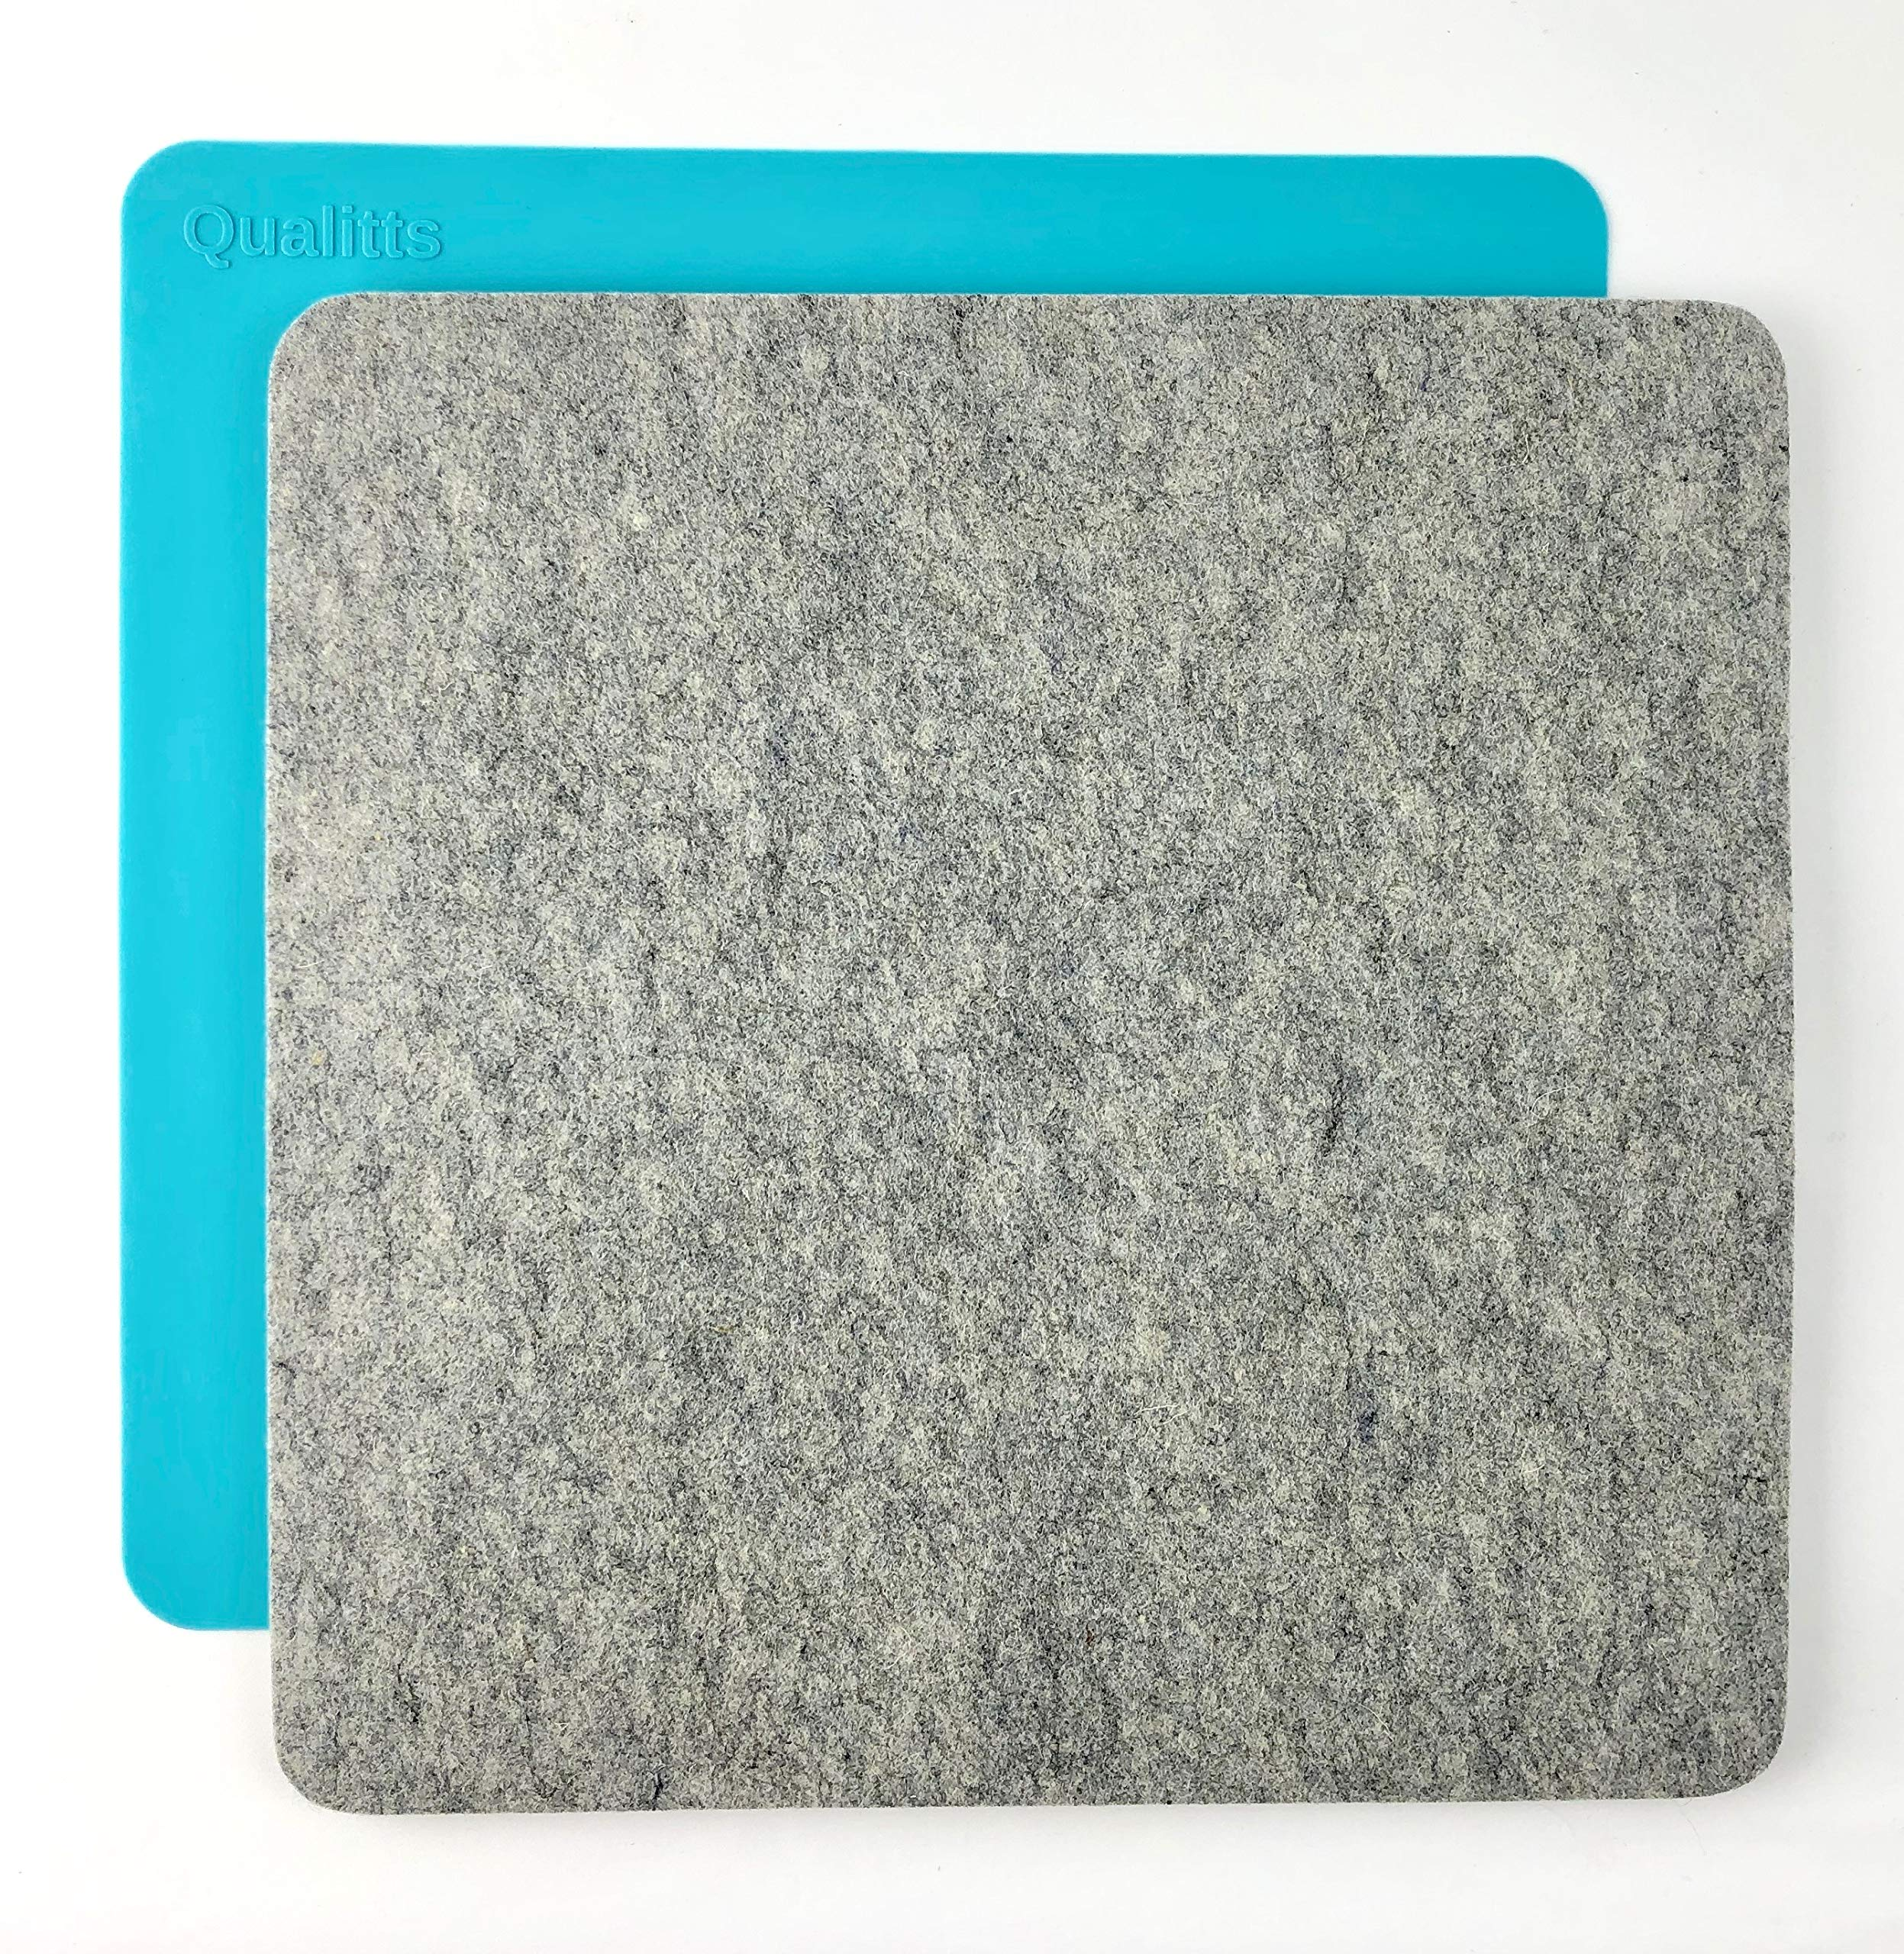 Wool Pressing Mat   14'' x 14'' x 1/2''   100% New Zealand Wool Ironing Pad with SteamShield Silicone Mat Steam Protector   The Perfect Portable Felted Ironing Board Station for Quilters by Qualitts by Qualitts